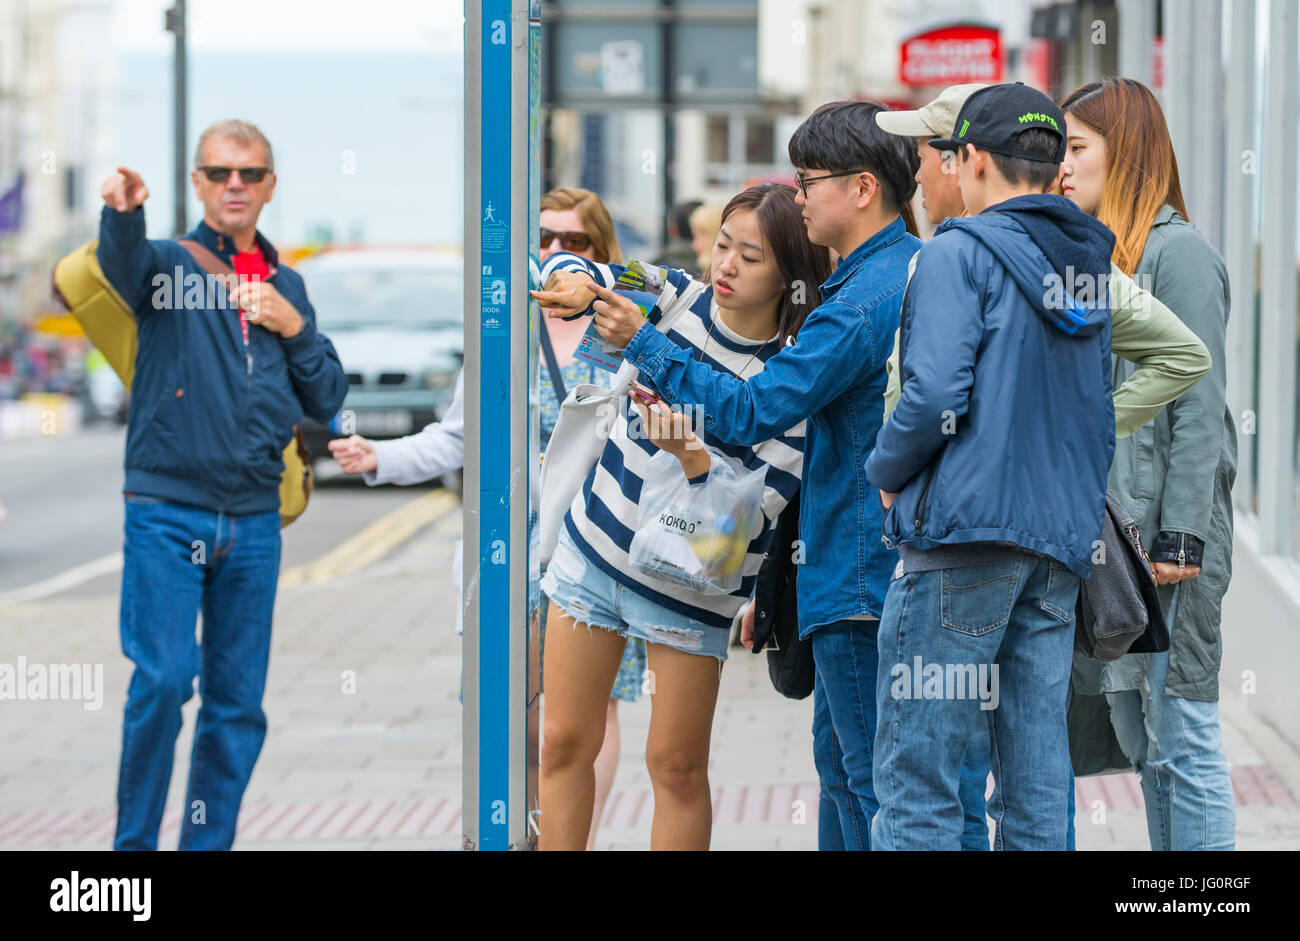 Japanese tourists looking at a street map in a city to find directions. - Stock Image